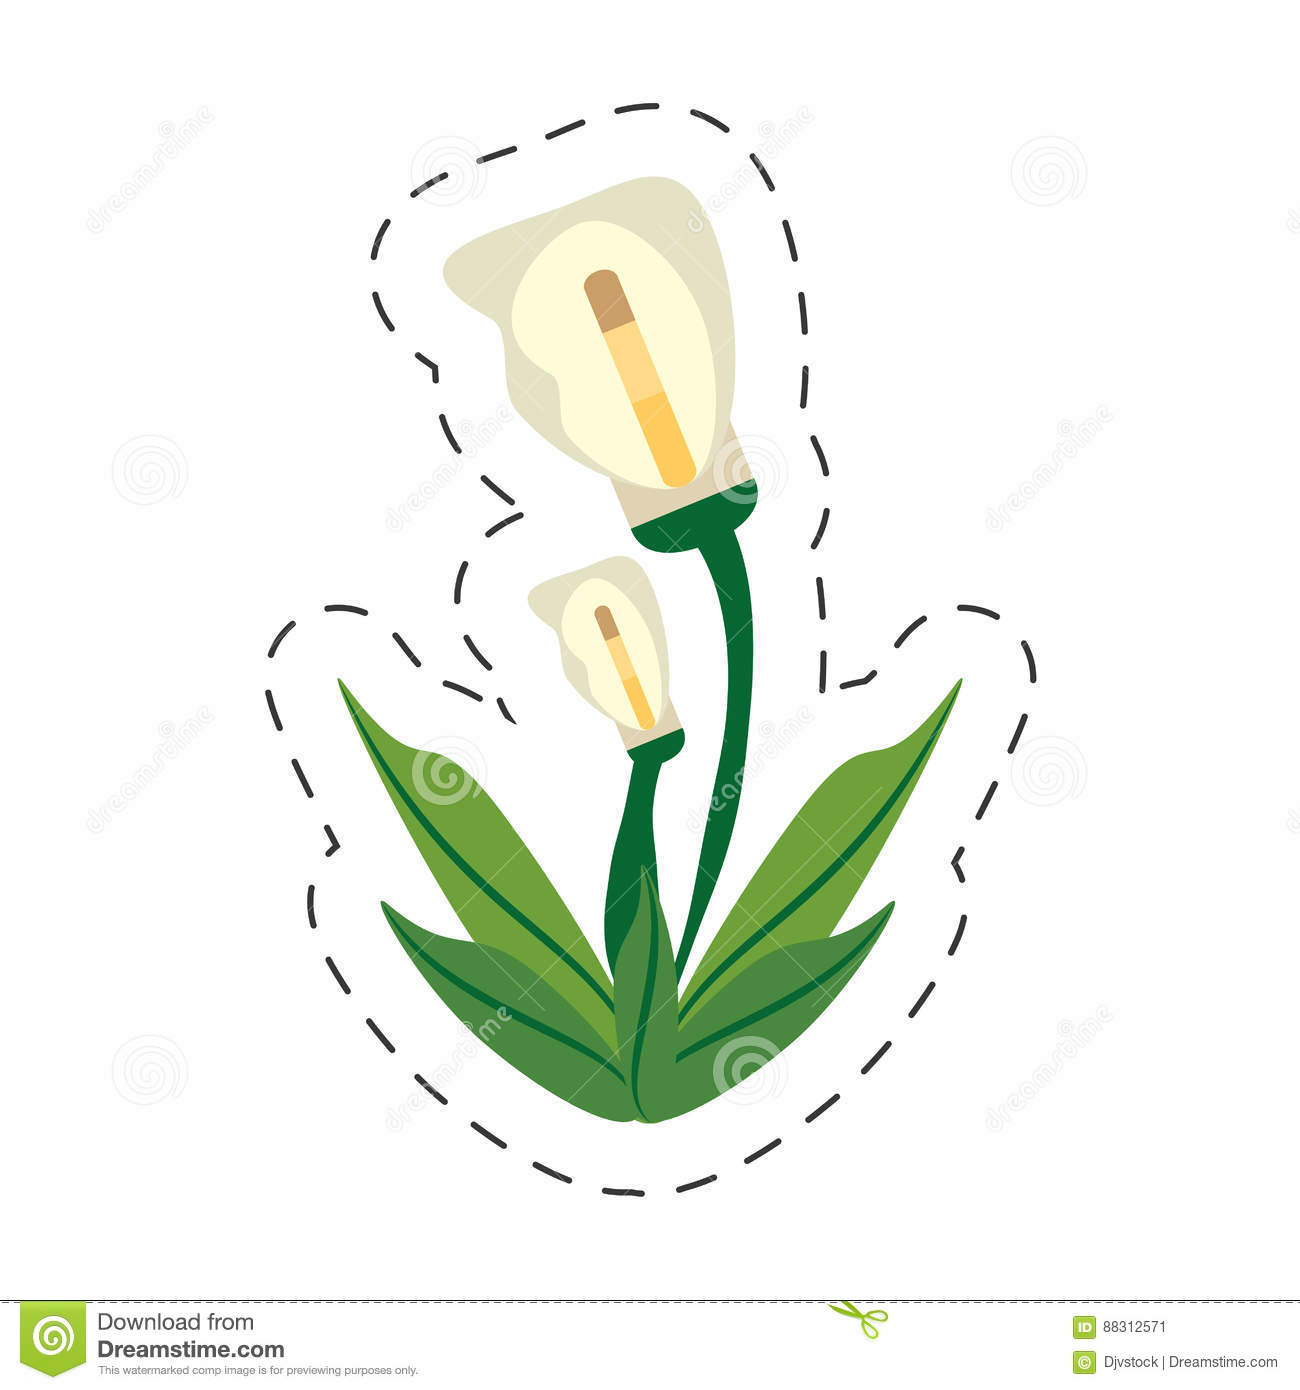 Cartoon calla lily flower image stock illustration illustration of download comp izmirmasajfo